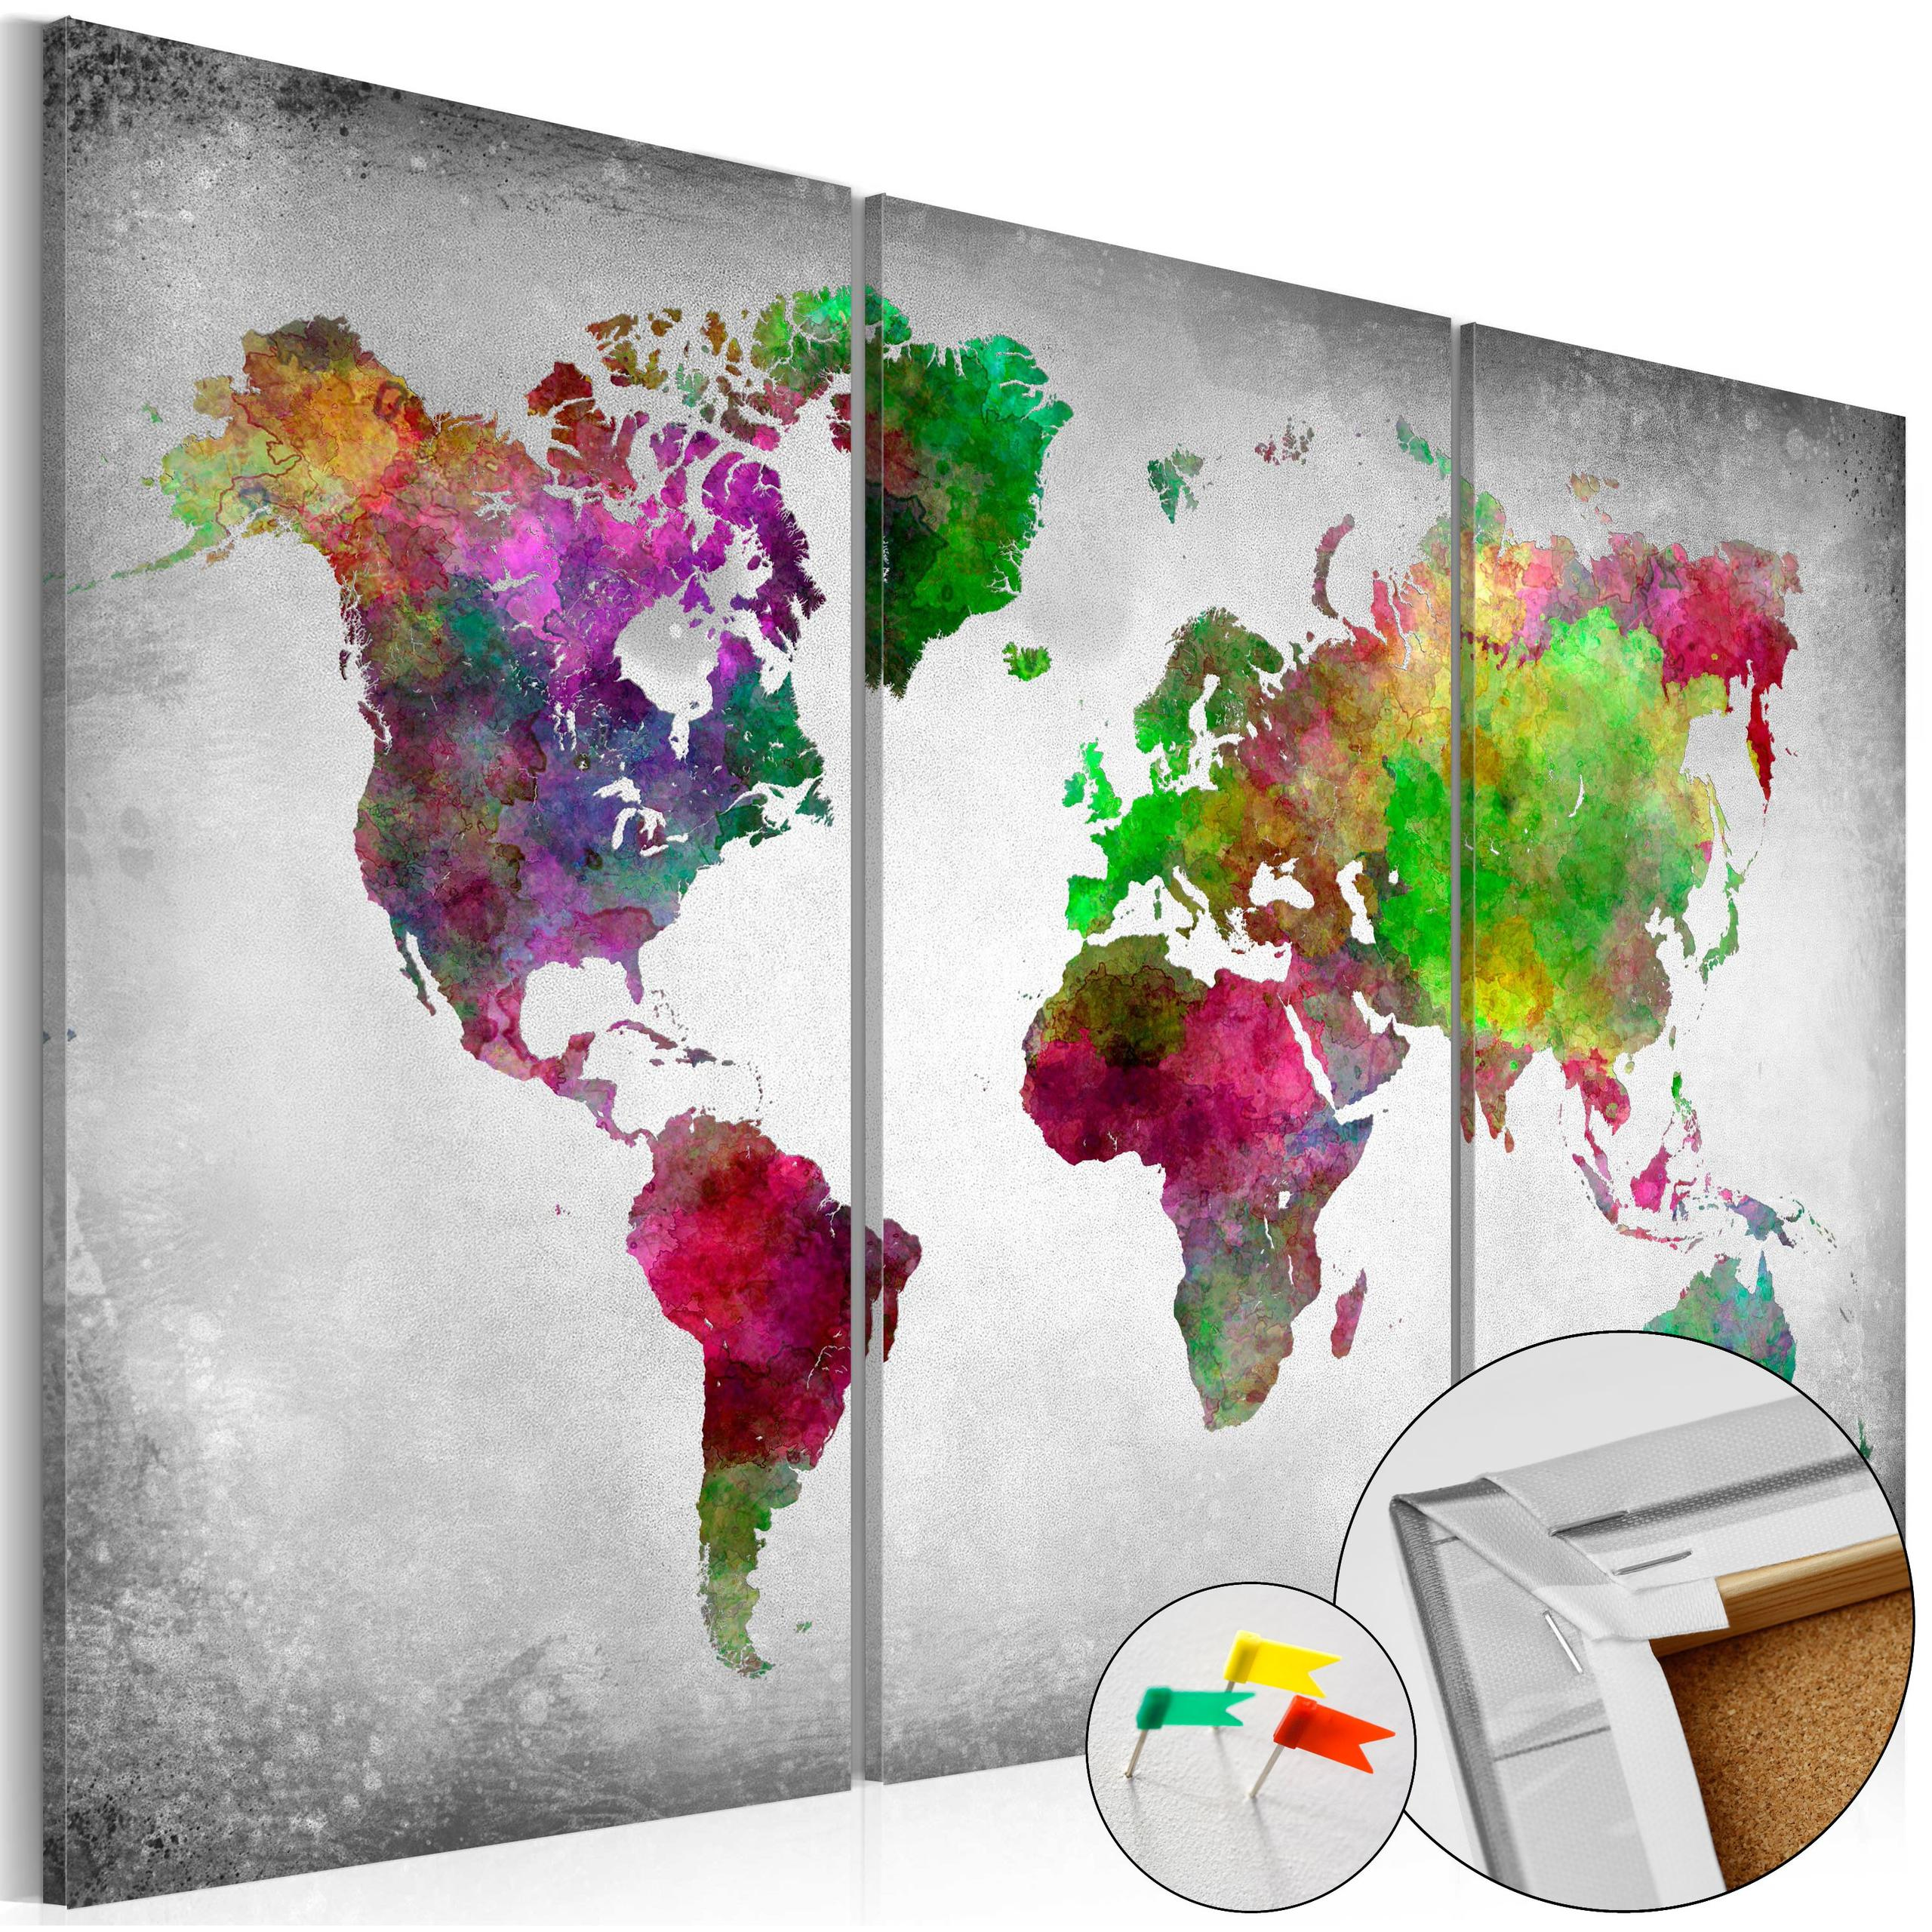 Quadro Di Sughero - Diversity Of World [Cork Map] 120x80cm Erroi